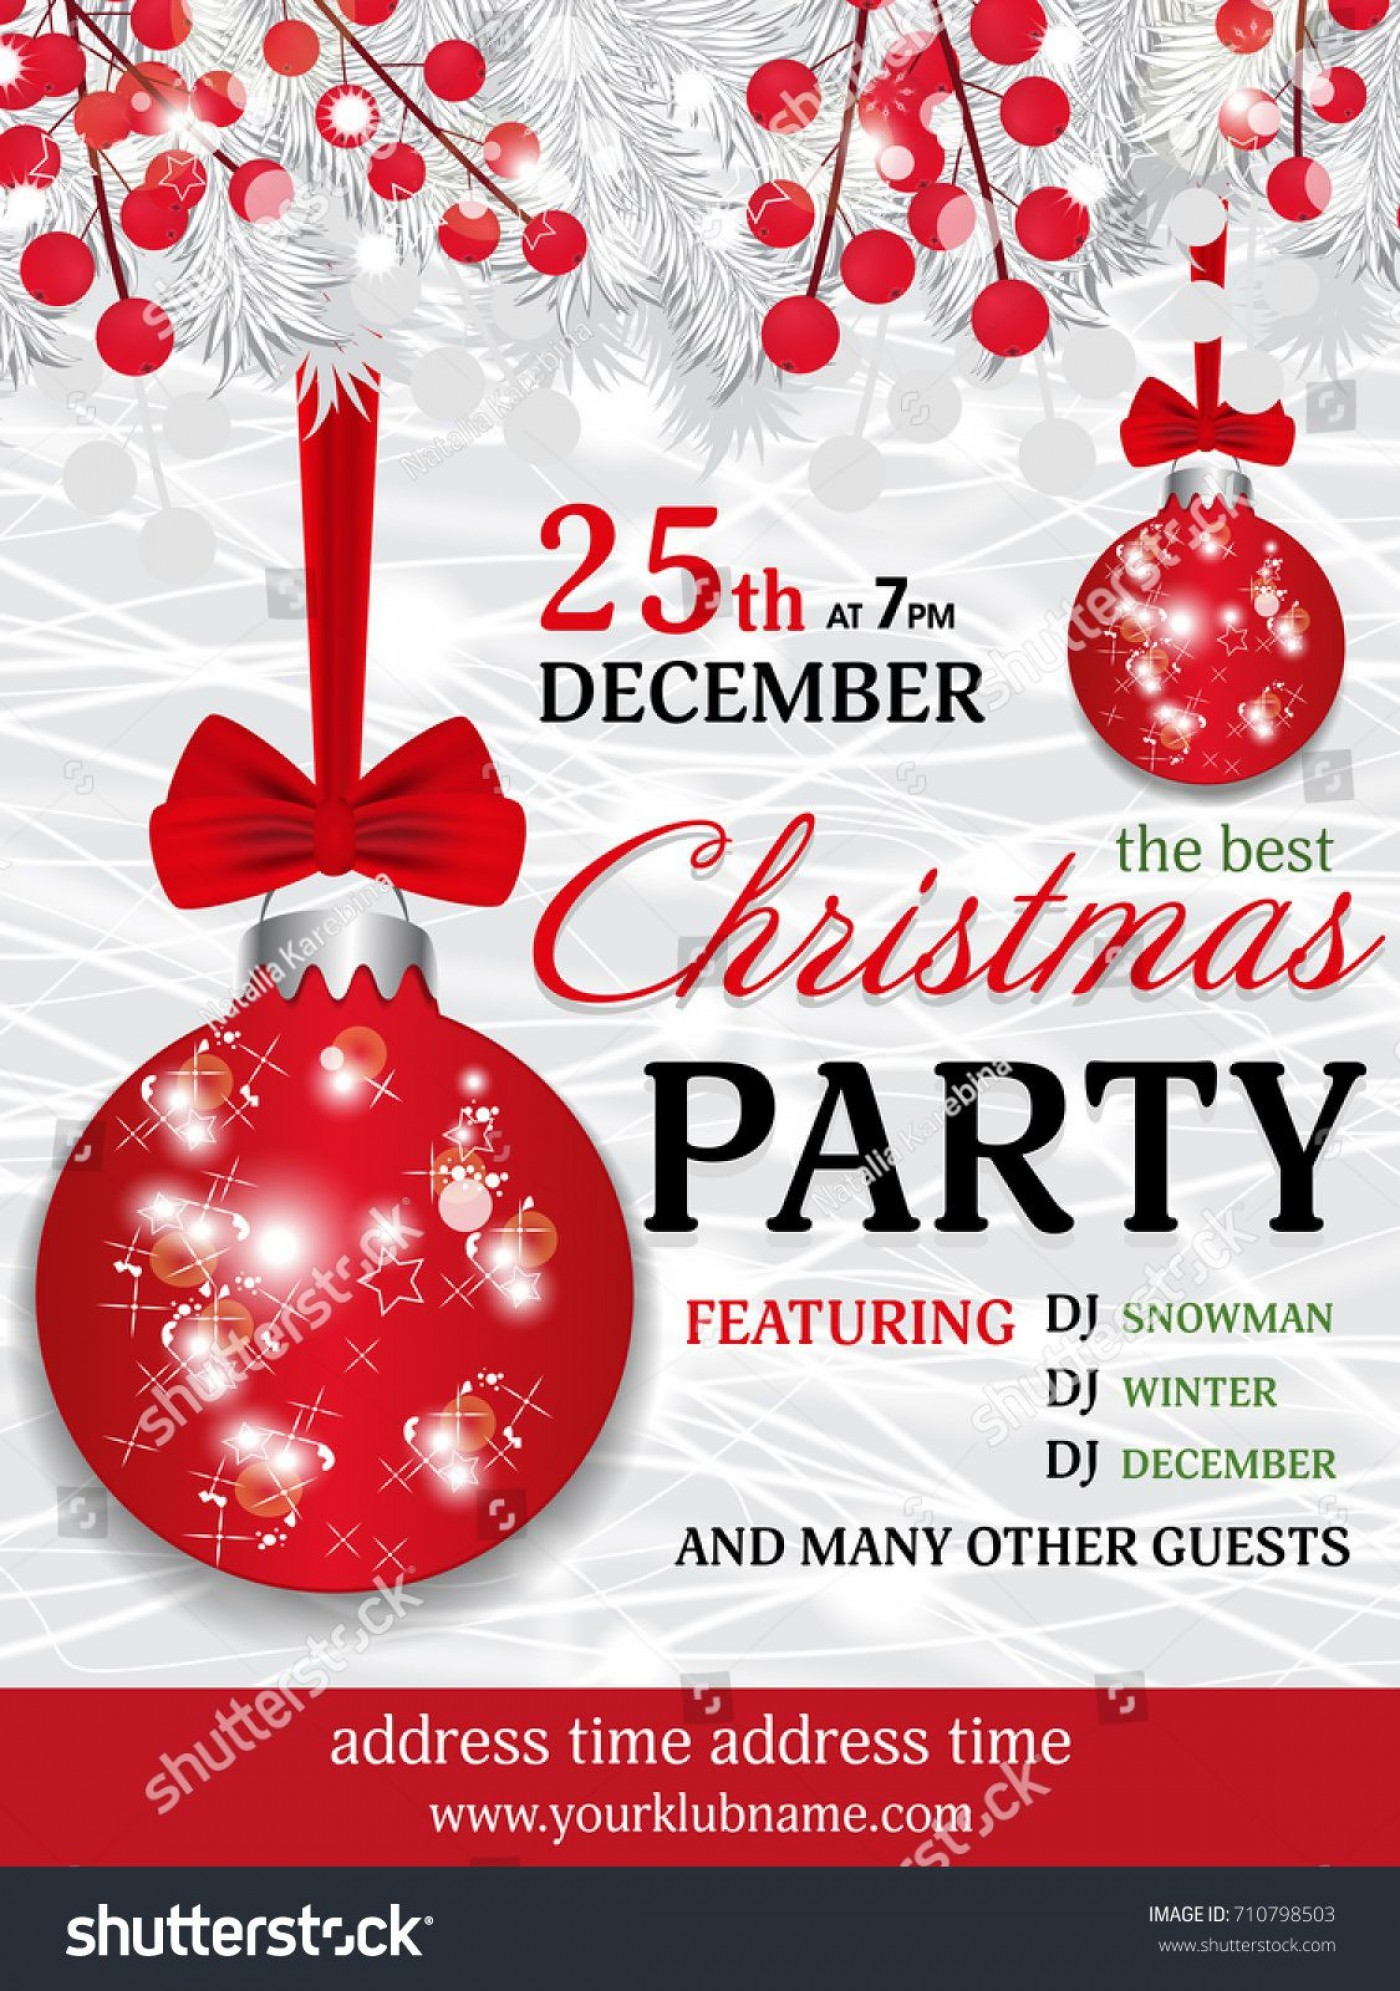 009 Wondrou Christma Party Invitation Template Design  Funny Free Download Word Card1400